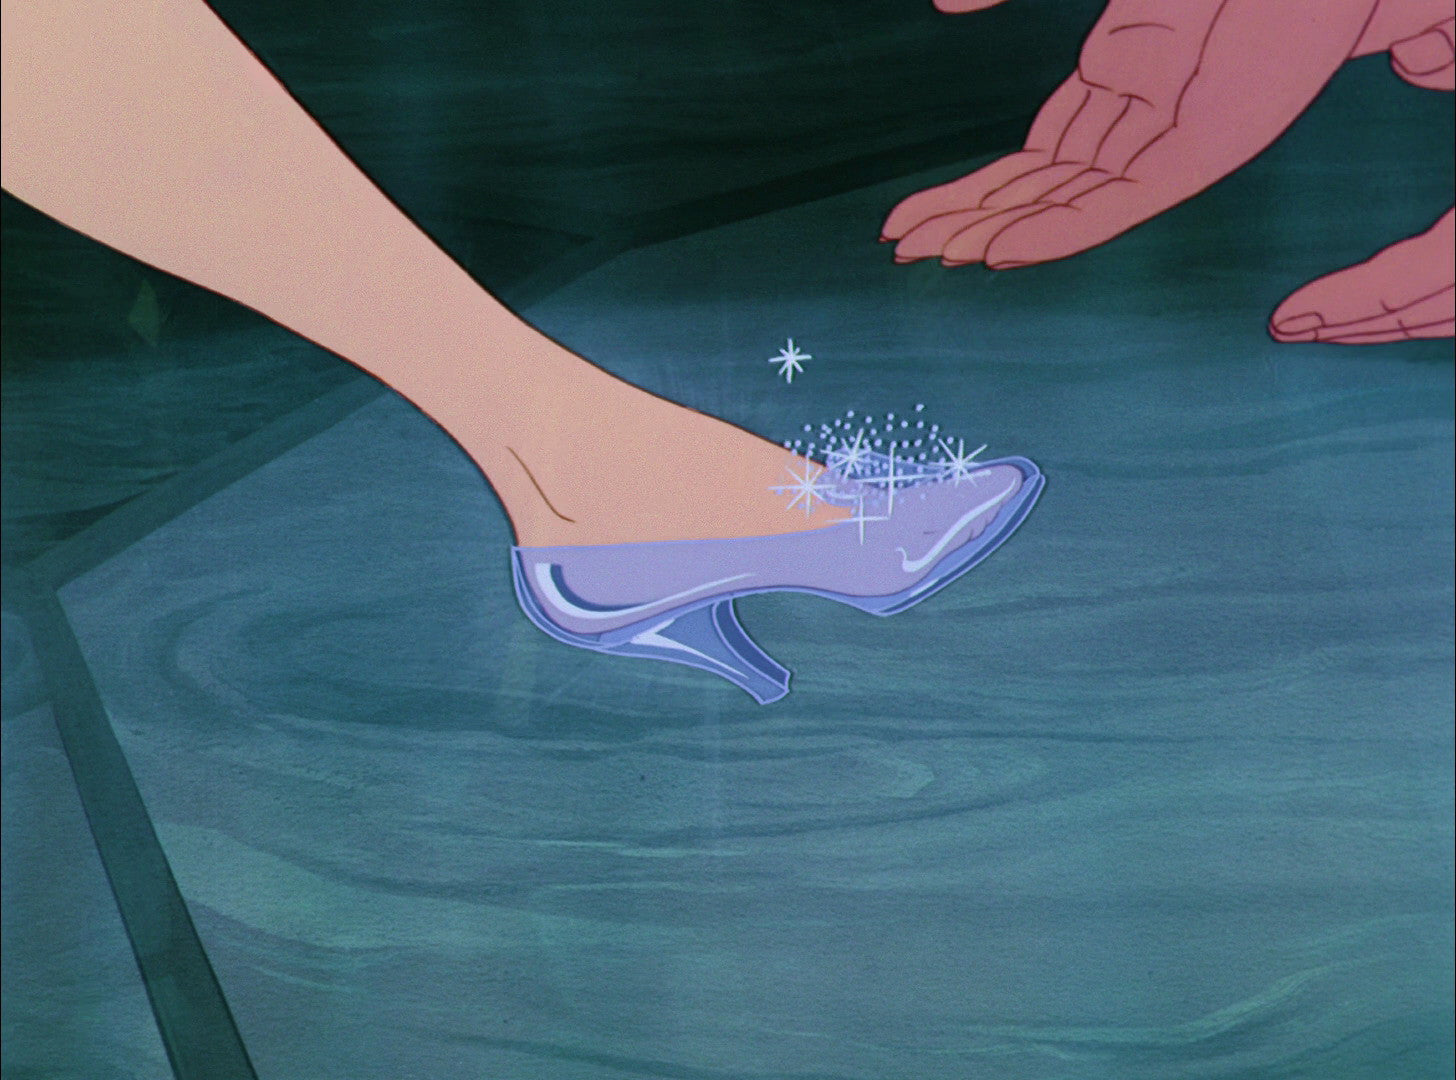 Now You Can Have Shoes Just Like Cinderella!